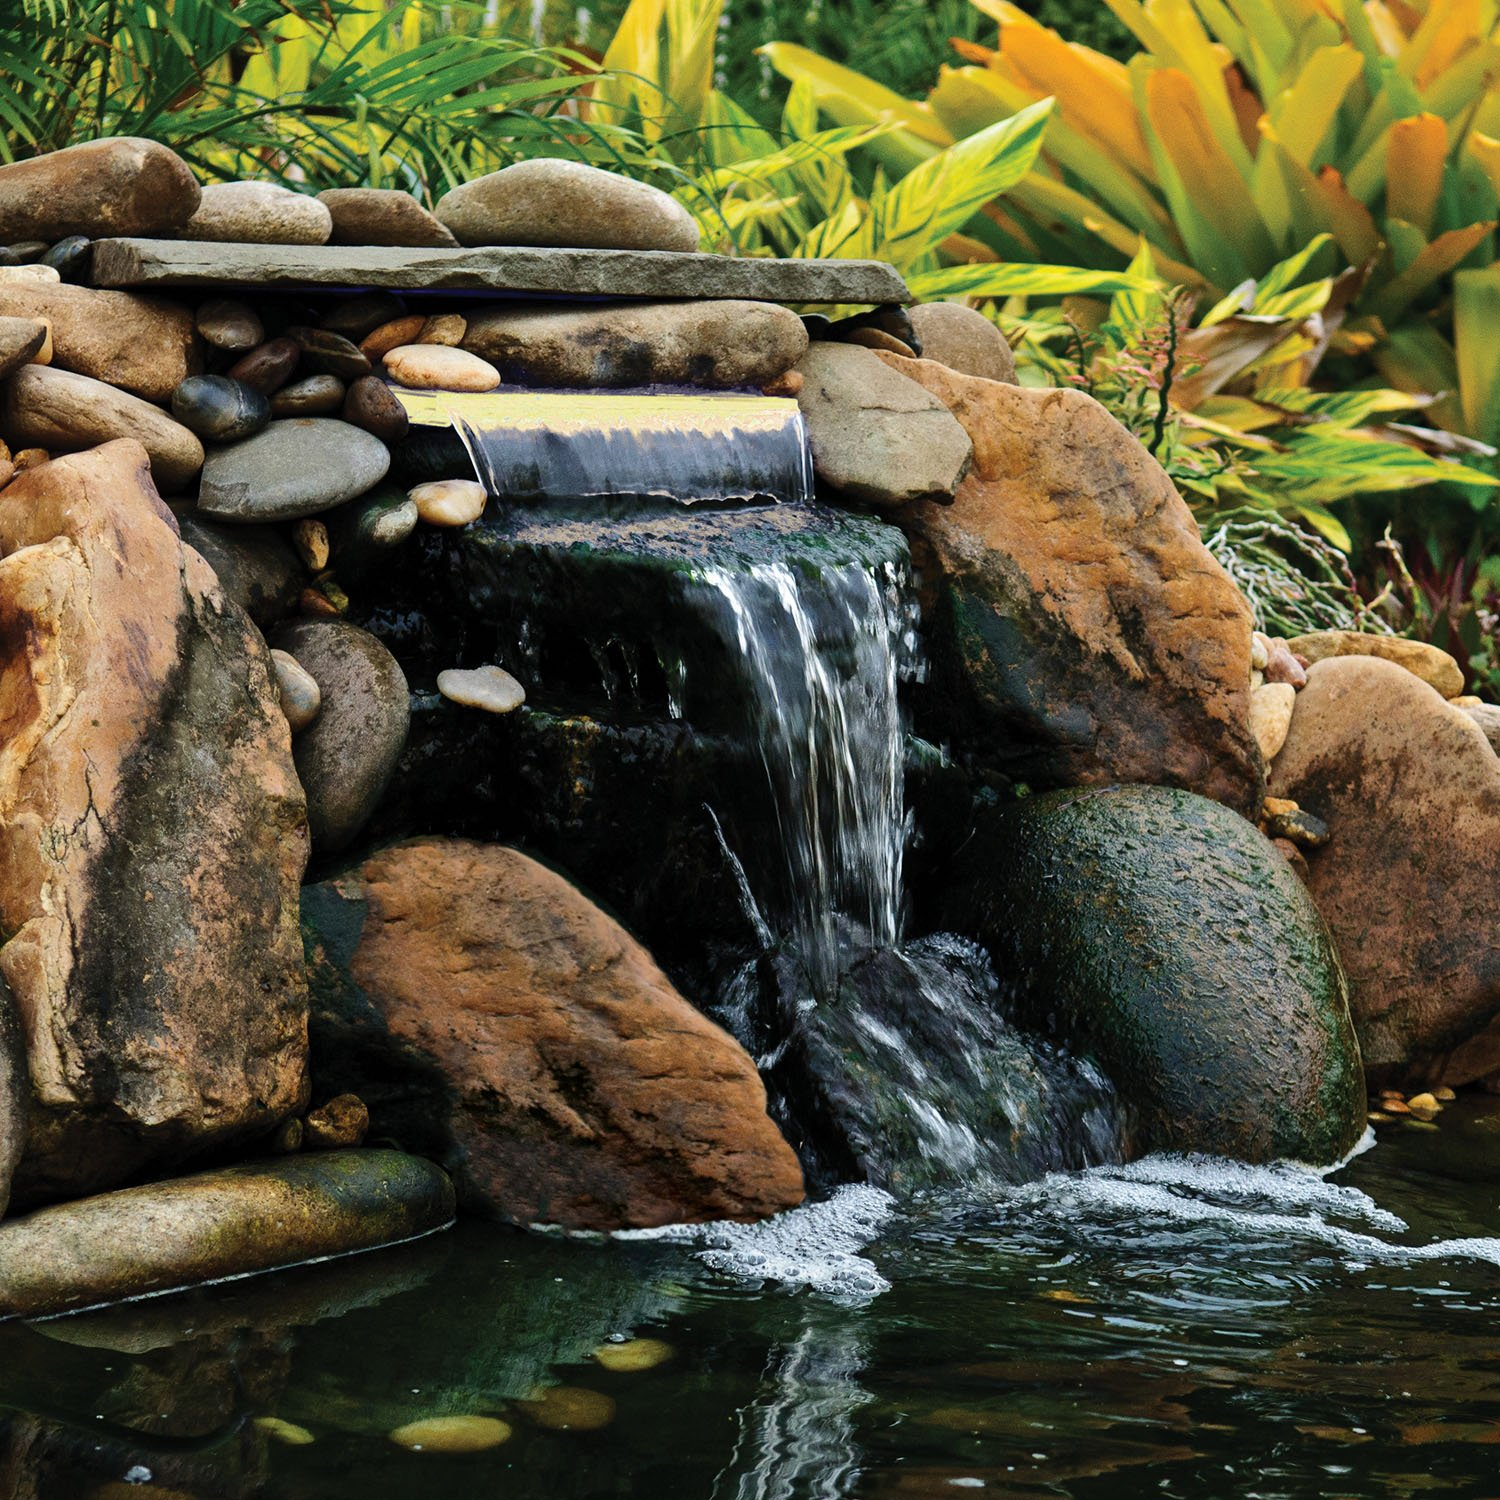 Pond Boss White Lit Waterfall Spillway, 12-Inch